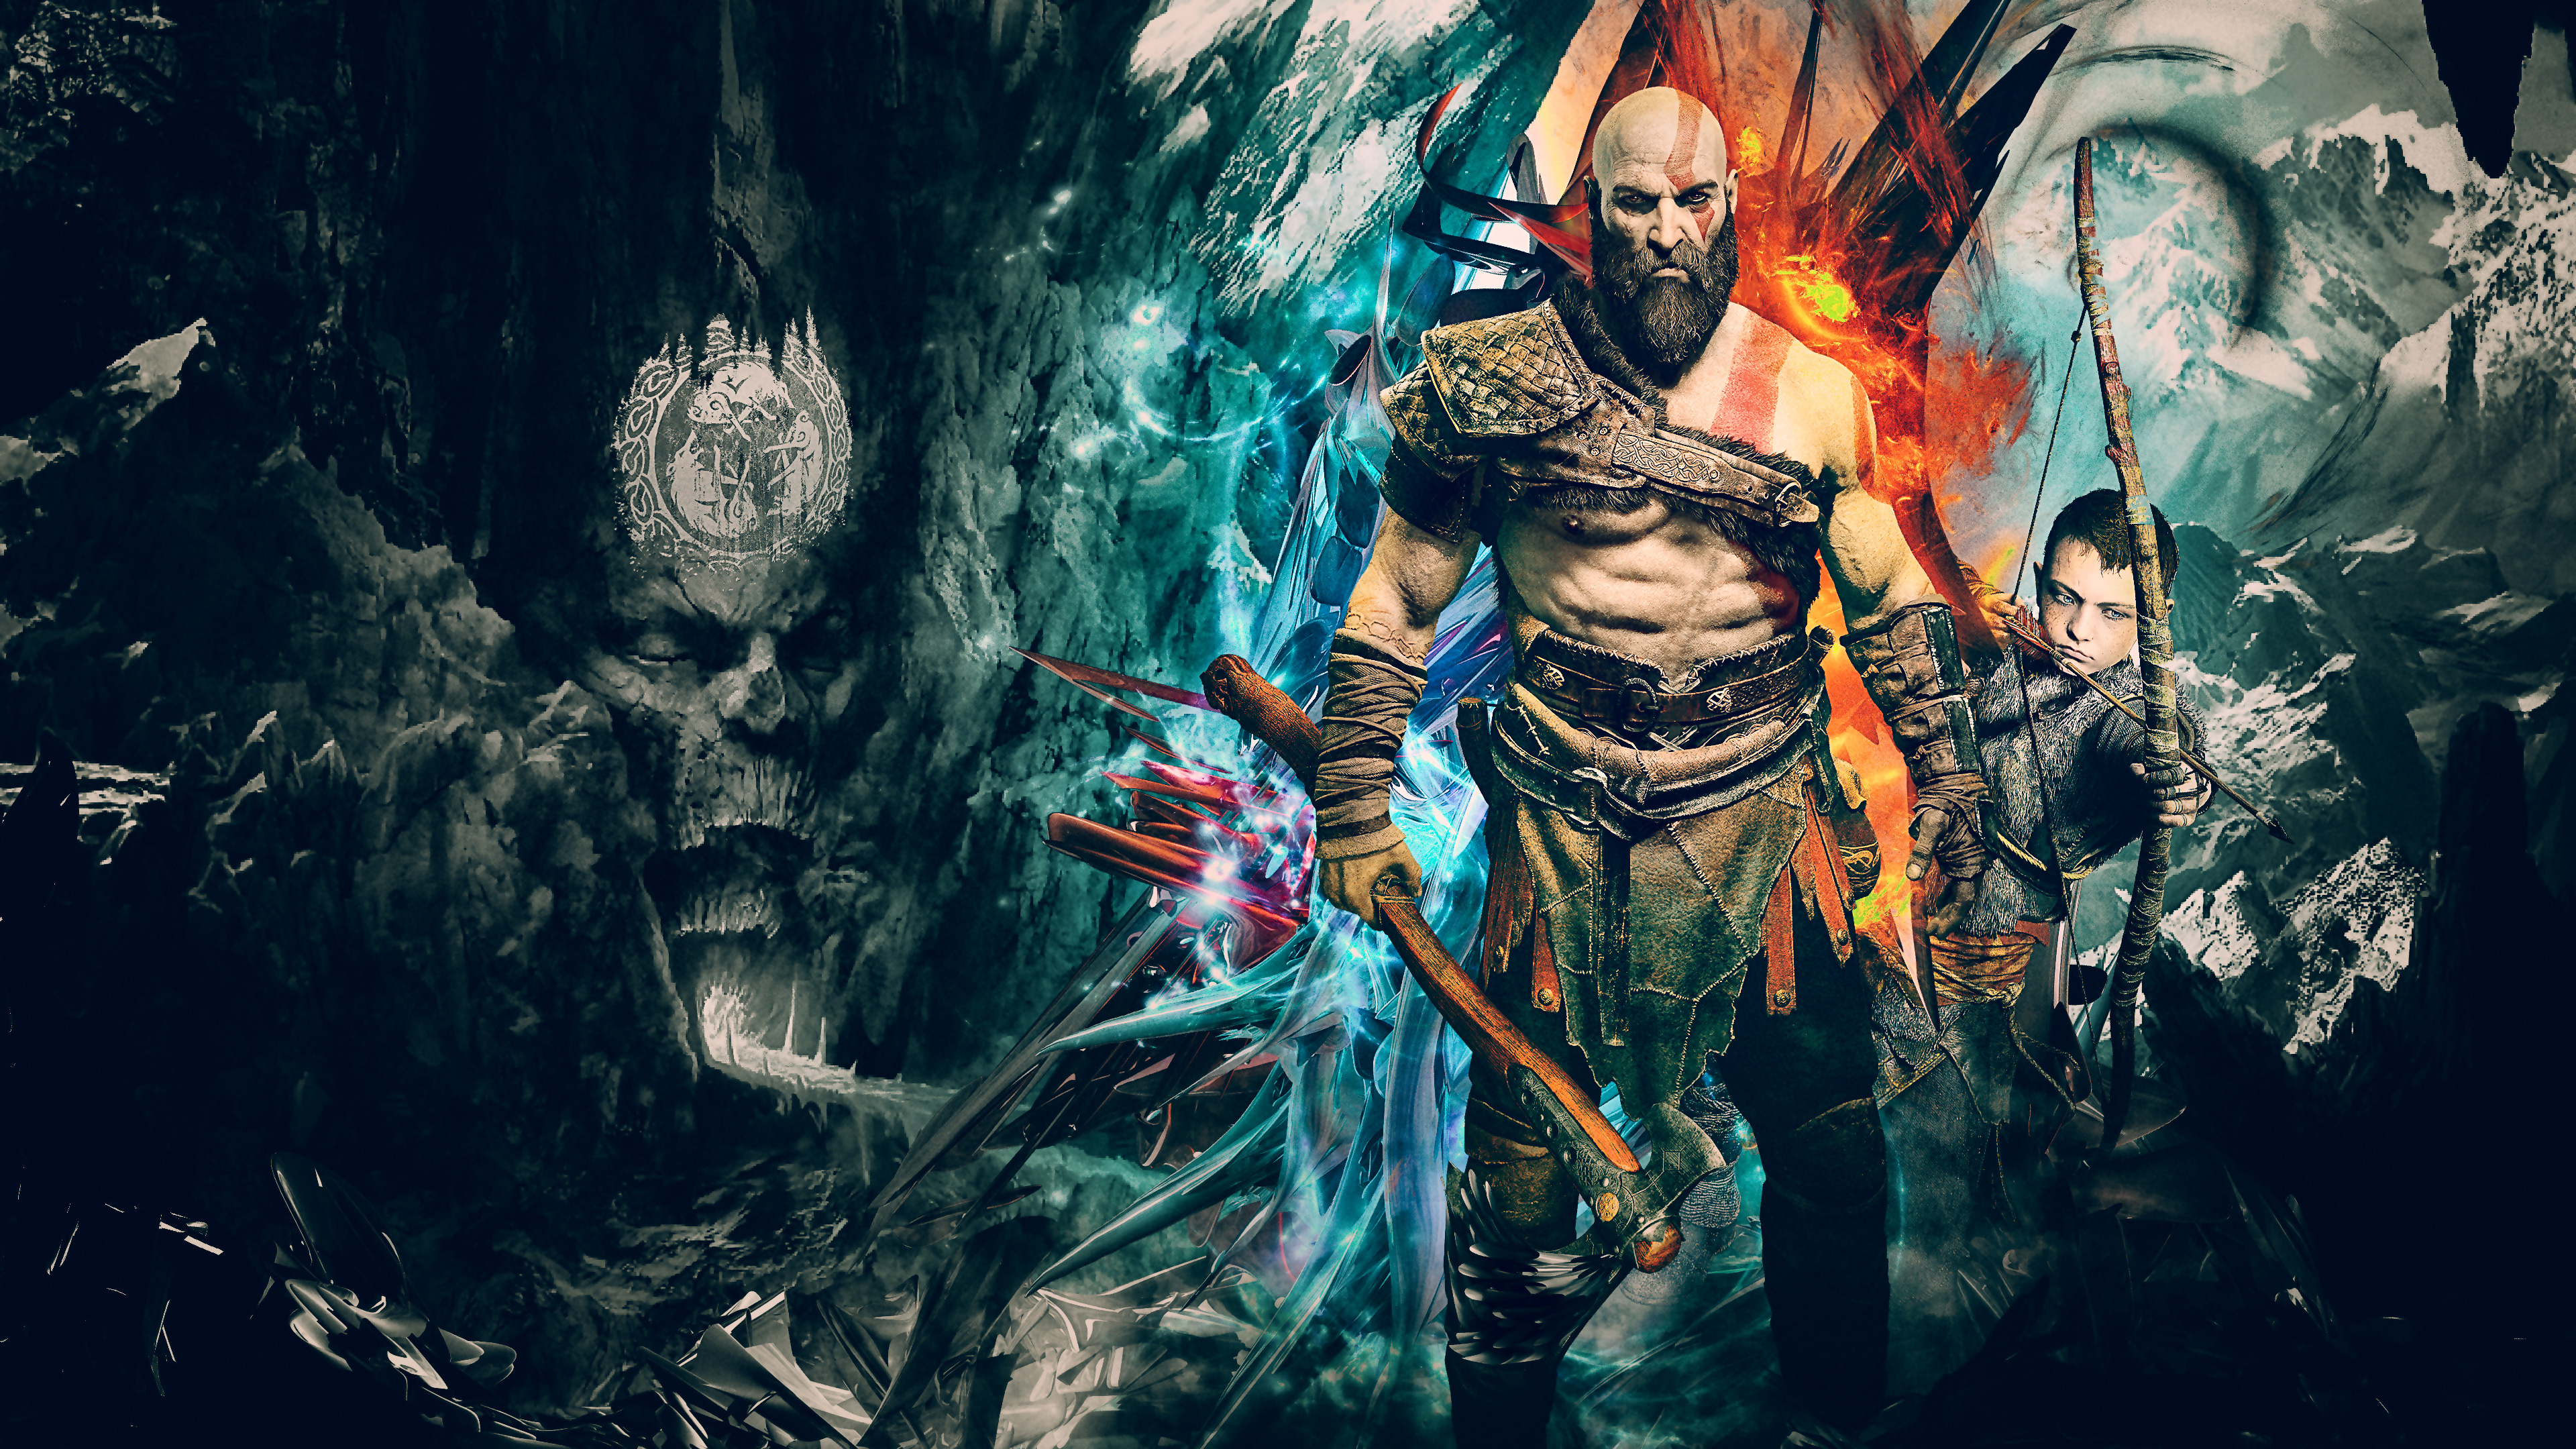 Download wallpapers of God of War, PlayStation 4, Kratos, Atreus, 2018, 4K, Games, #12991. Available in HD, 4K resolutions for desktop & mobile phones Available in HD, 4K resolutions for desktop & mobile phones